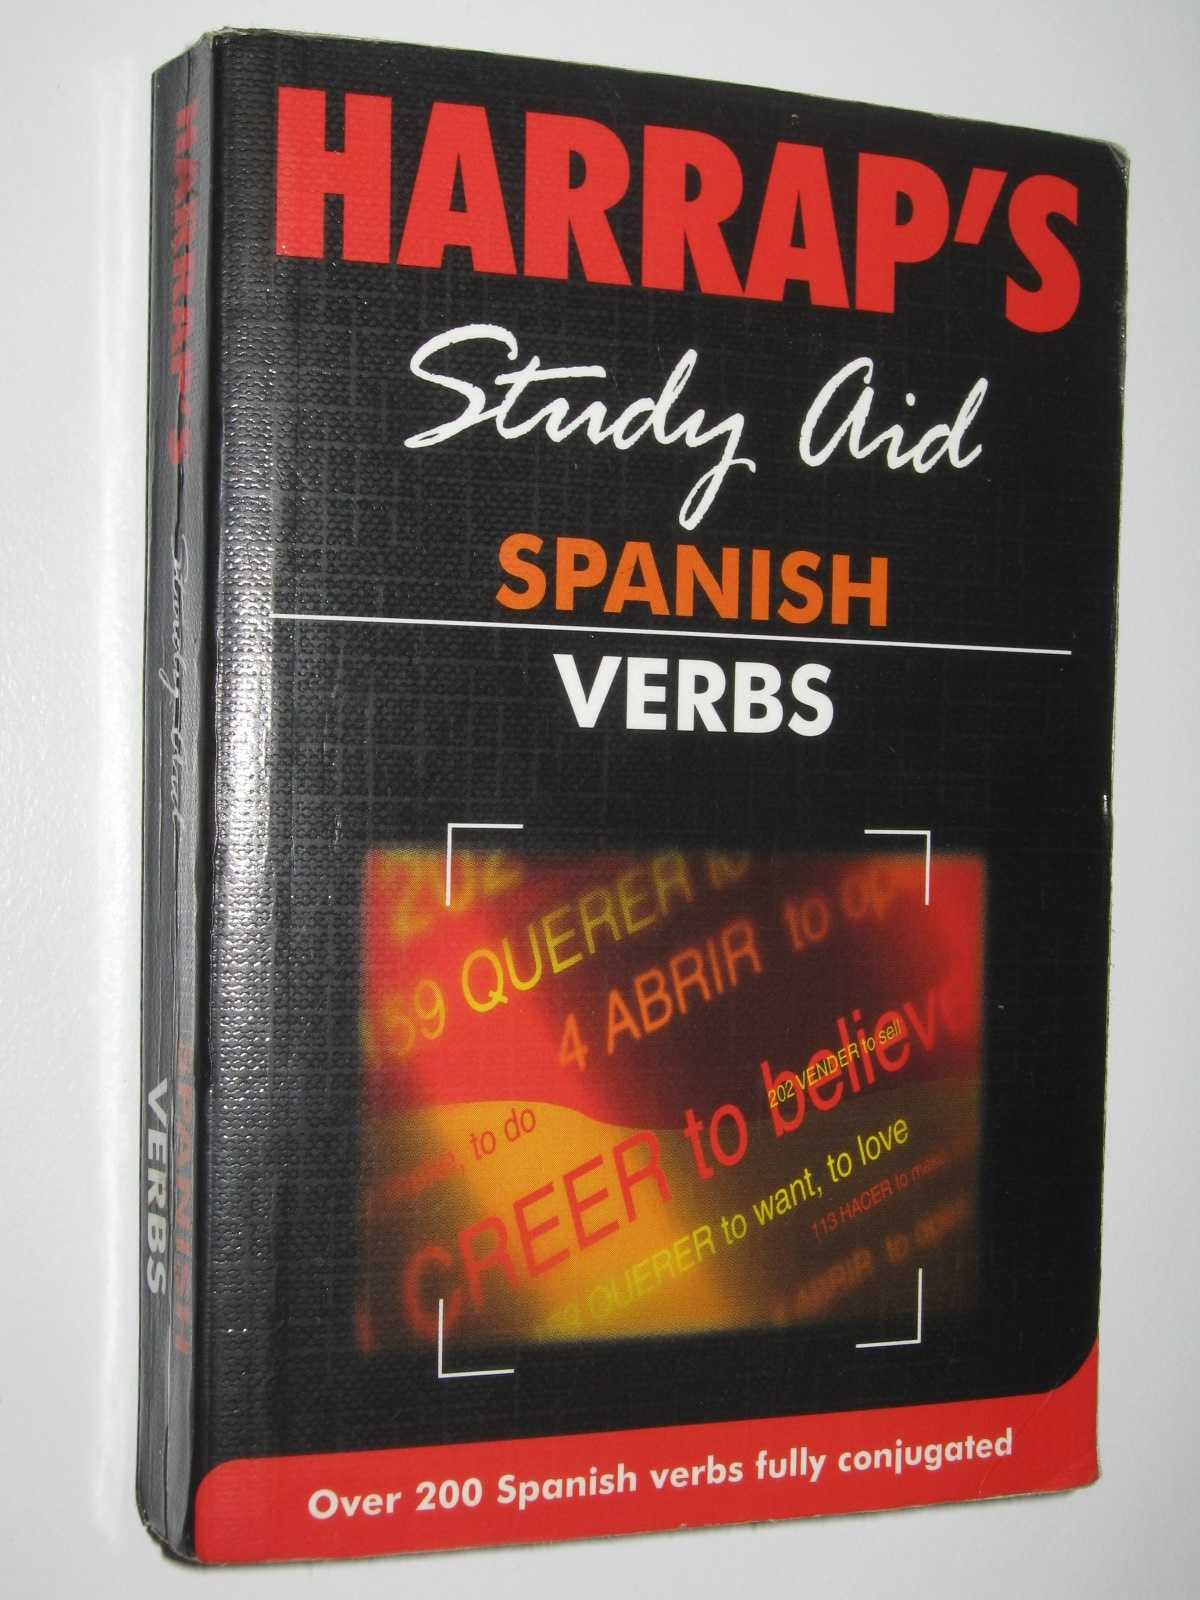 Image for Spanish Verbs : Harrap's Study Aid